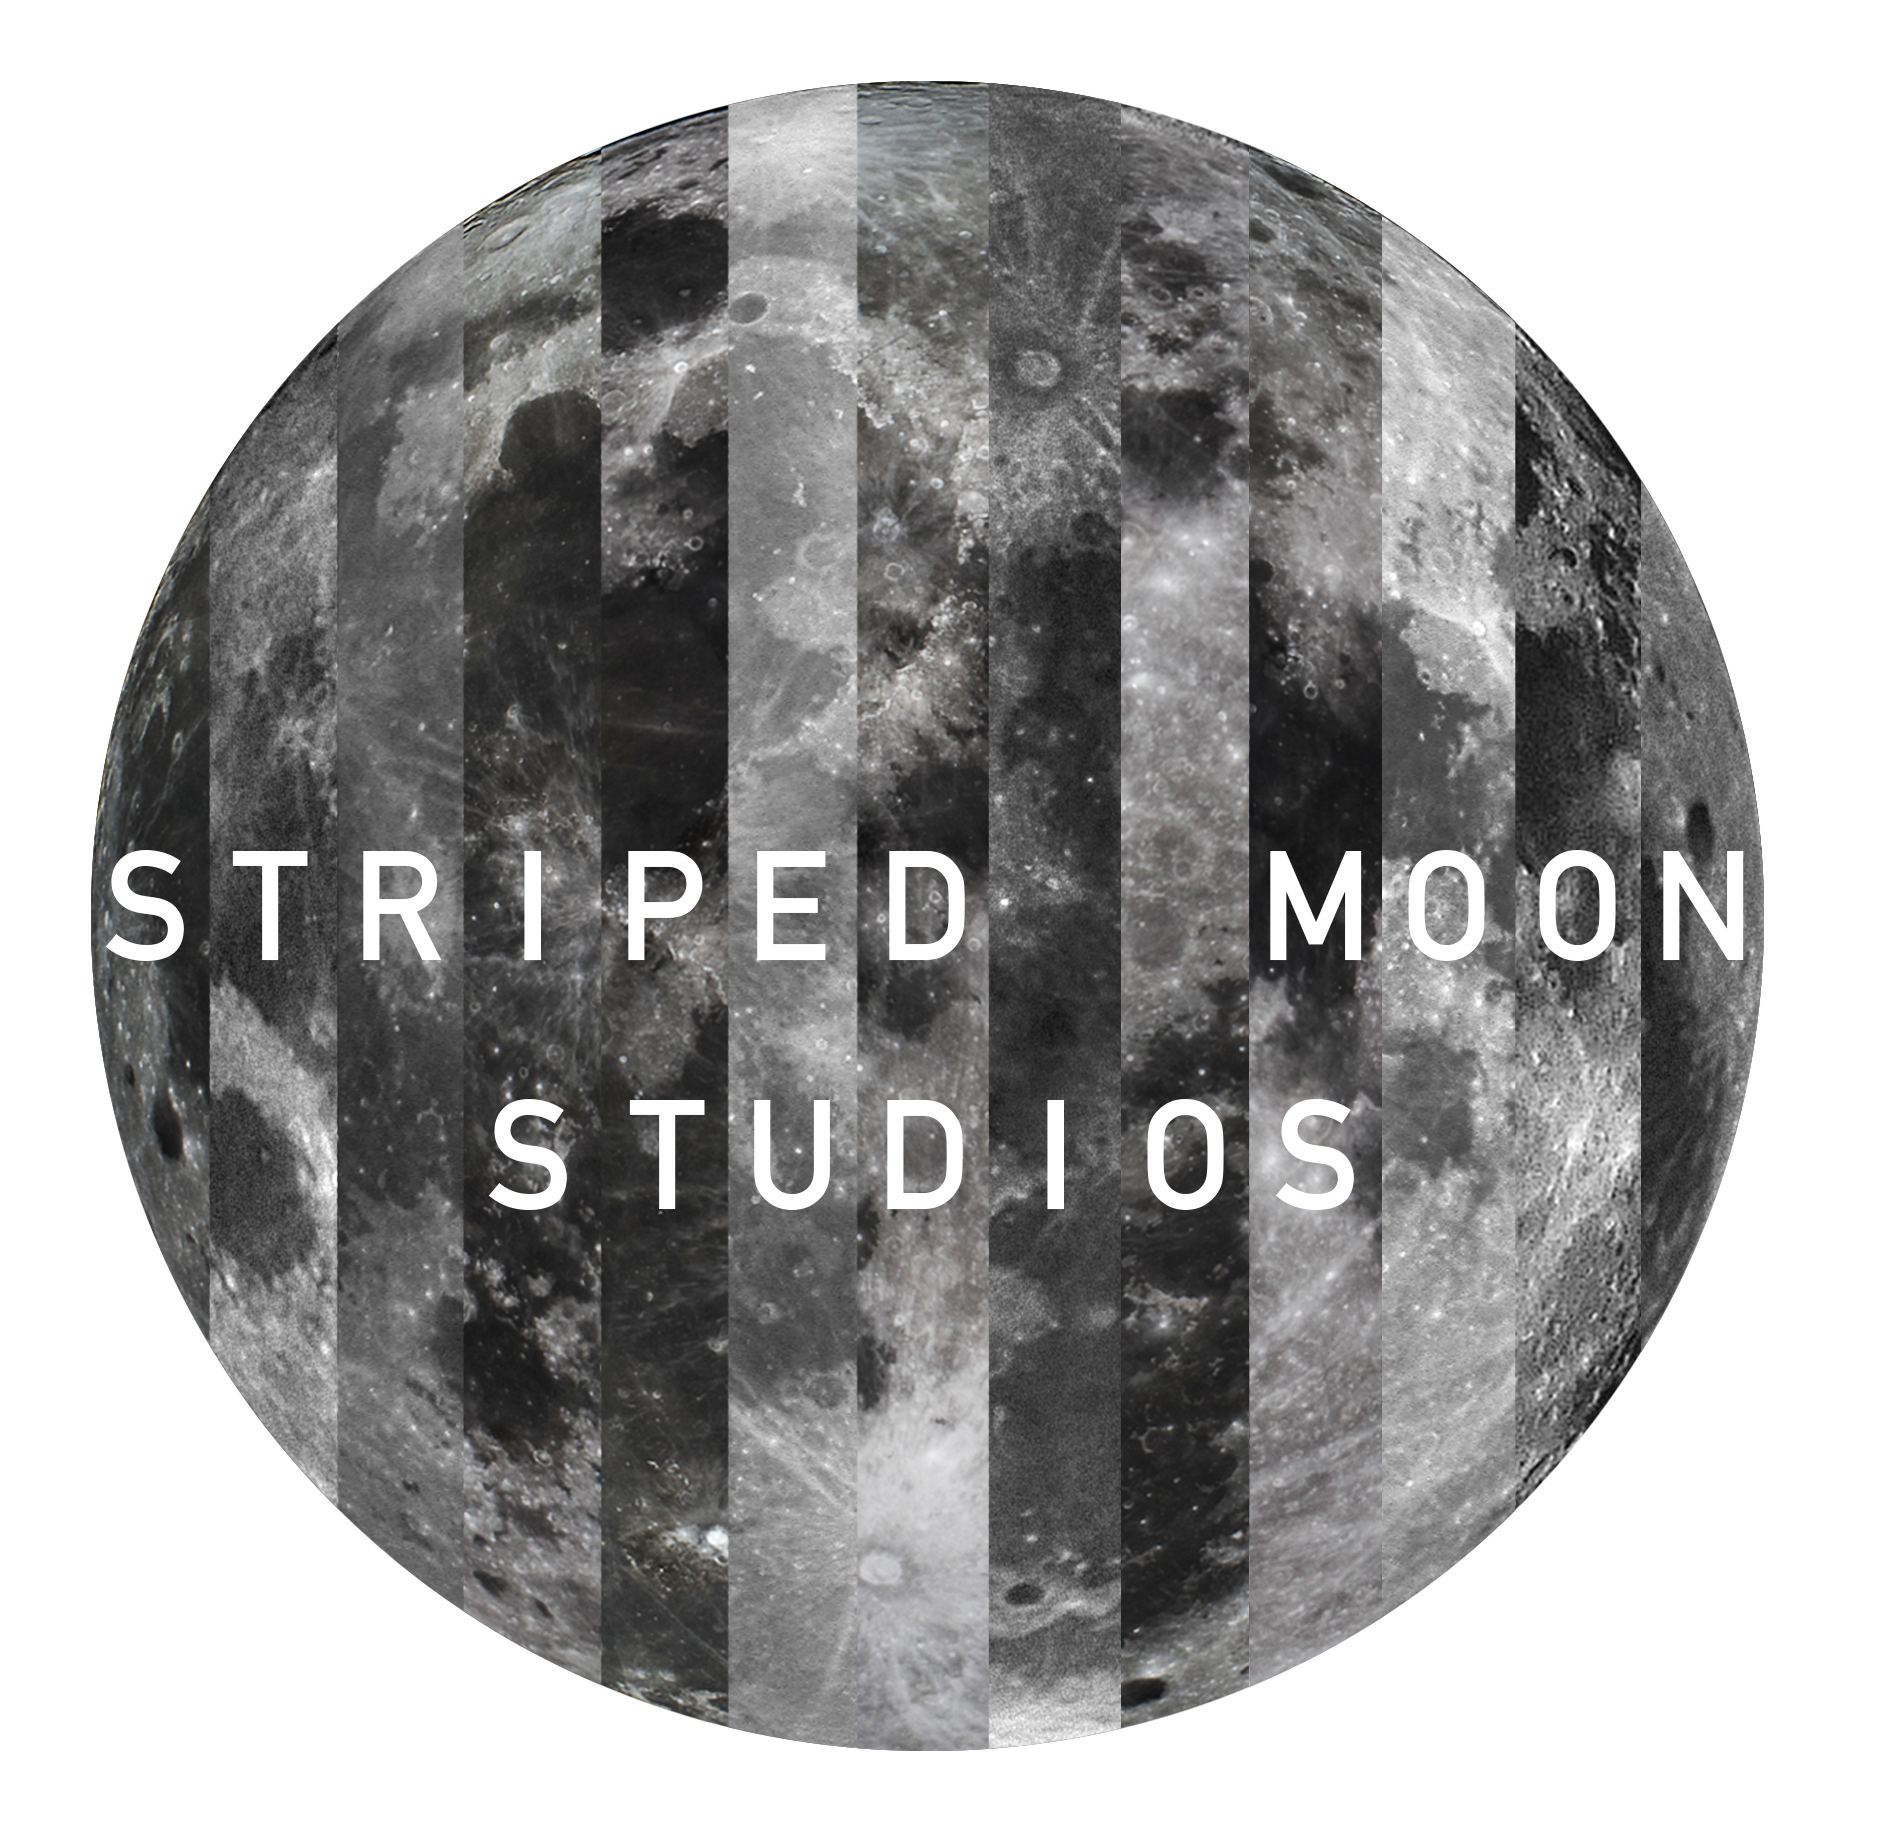 Striped Moon Studios